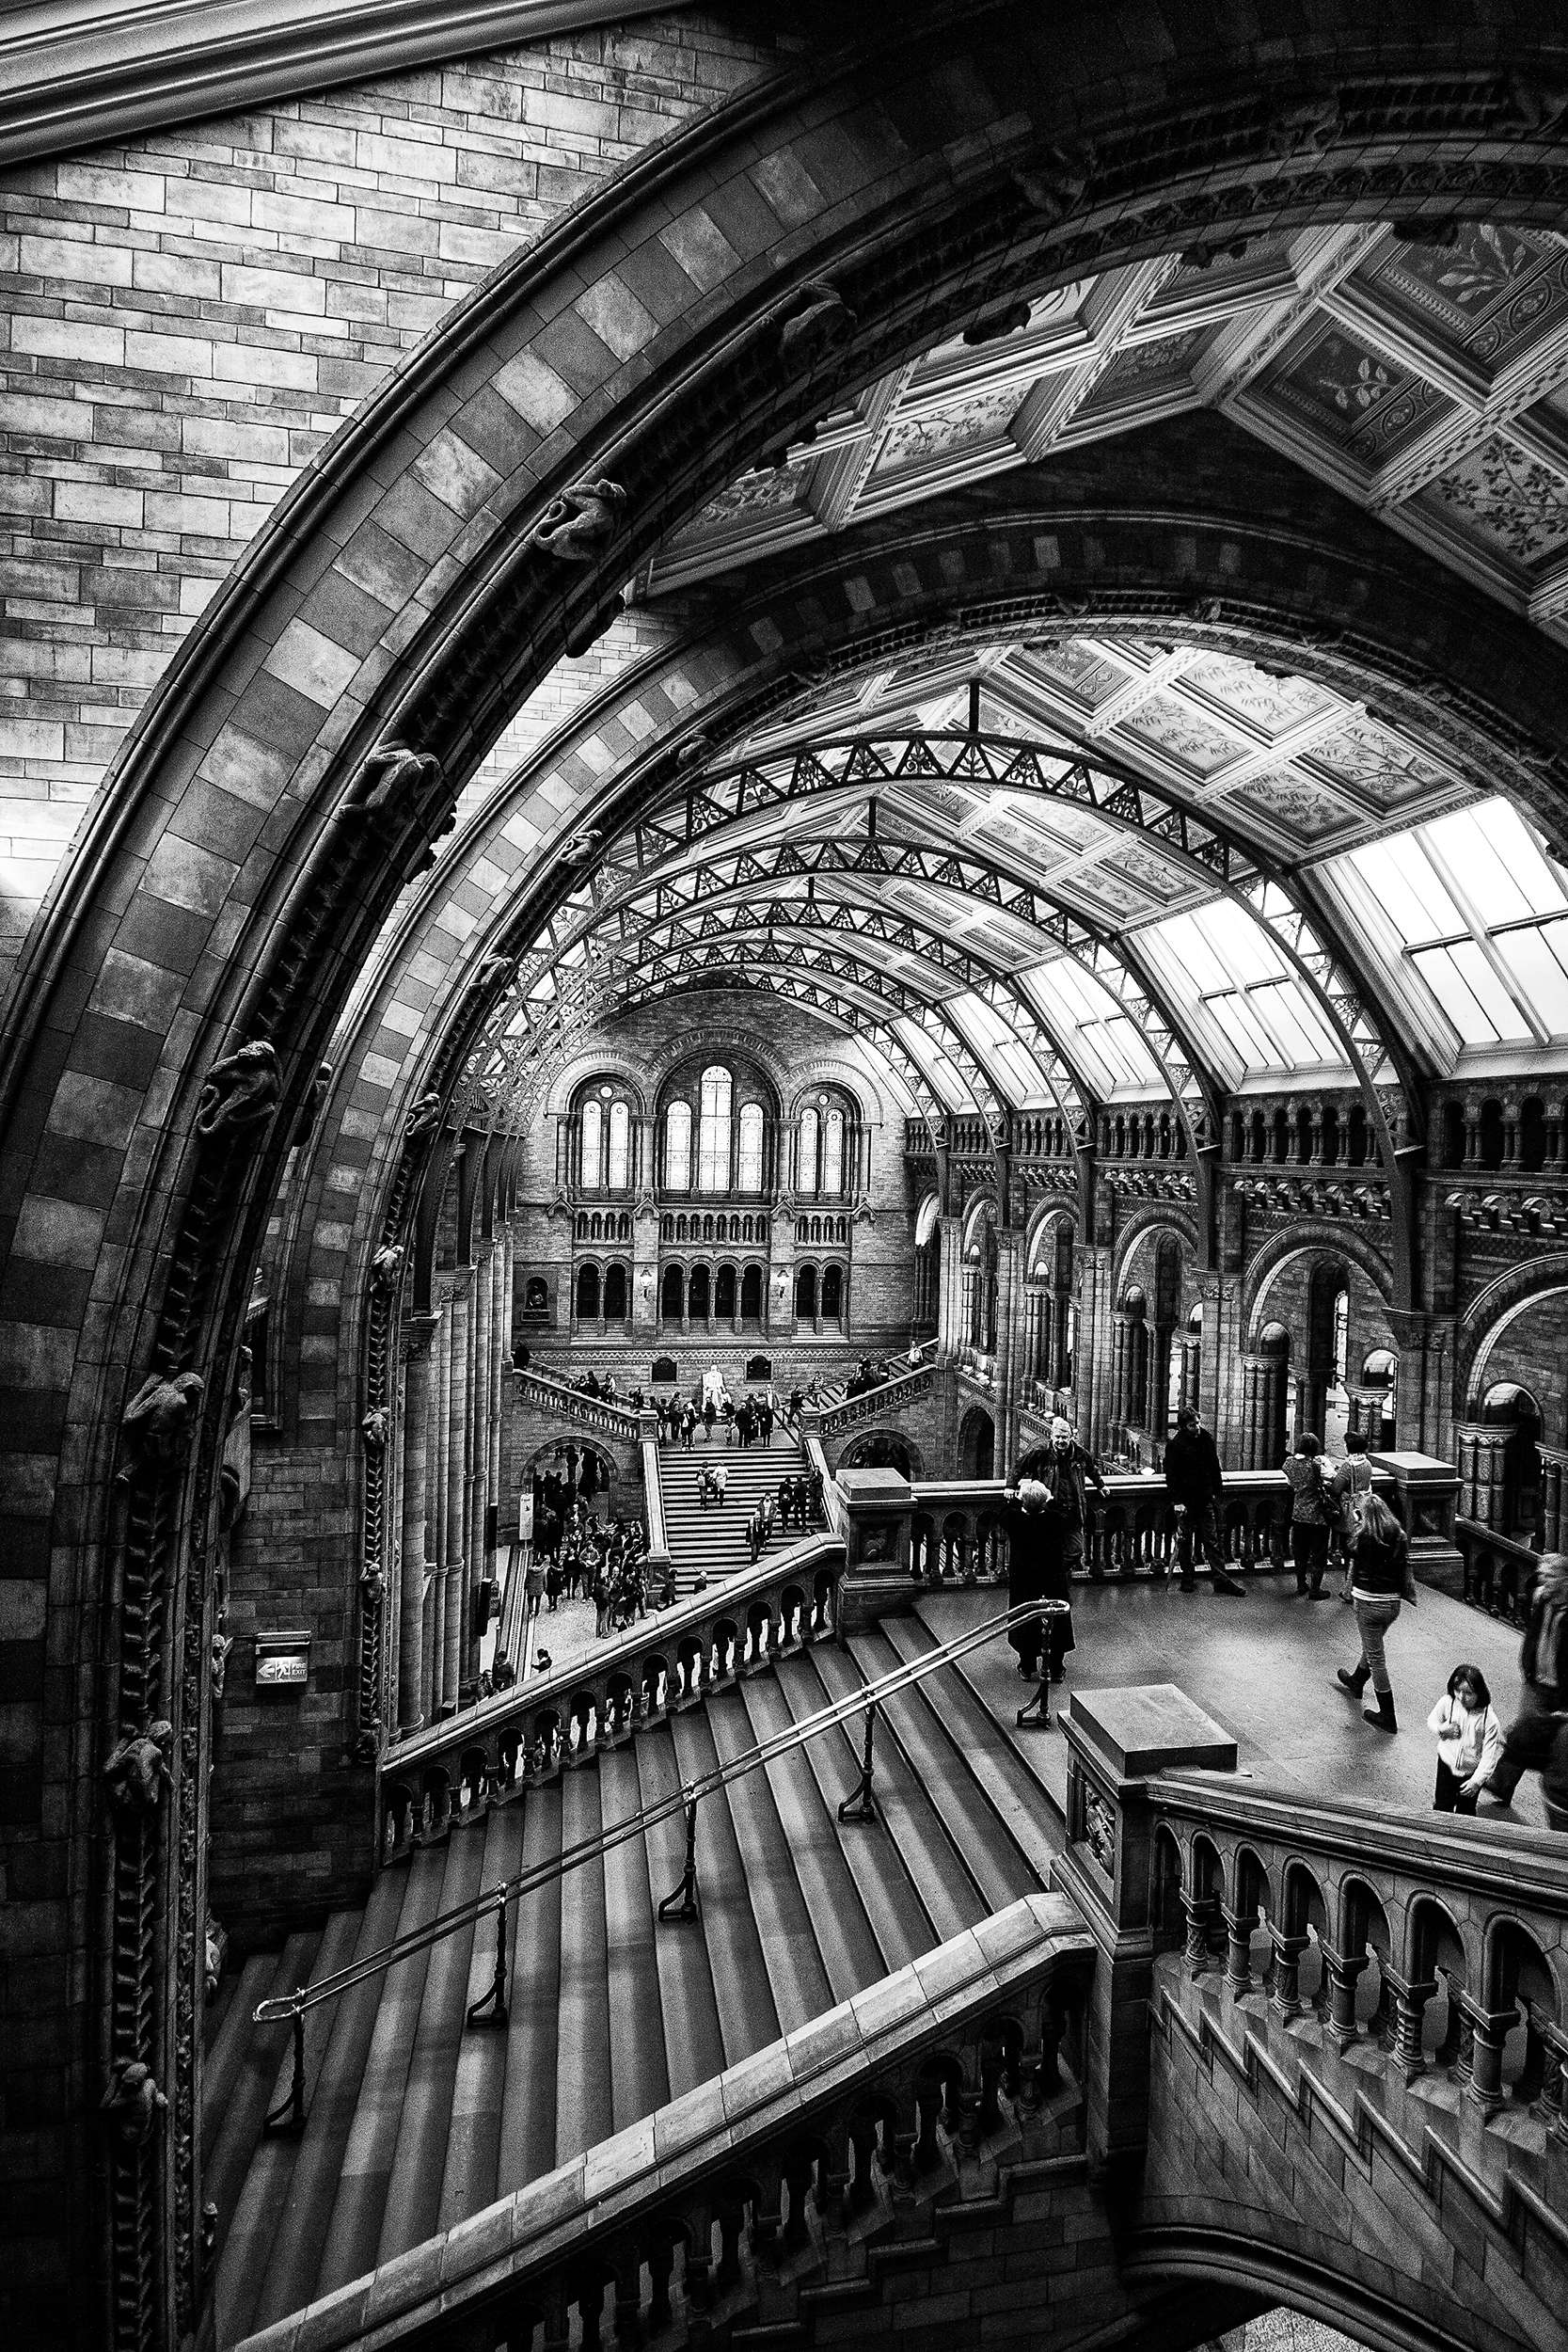 stunning hall london arch tips 7dayshop dan architecture photographer comments june amazing